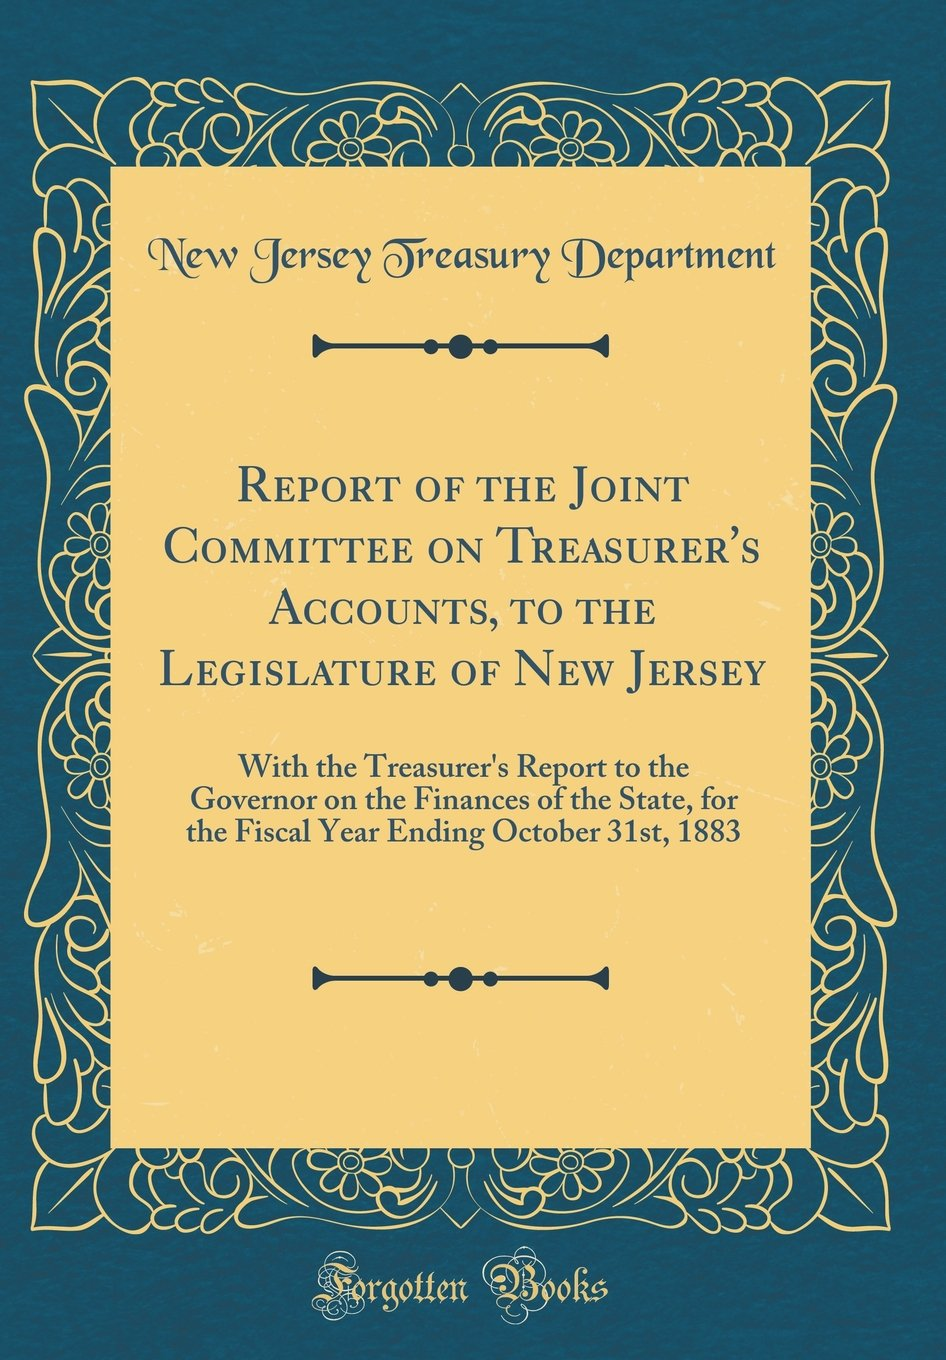 Report of the Joint Committee on Treasurer's Accounts, to the Legislature of New Jersey: With the Treasurer's Report to the Governor on the Finances ... Ending October 31st, 1883 (Classic Reprint) PDF